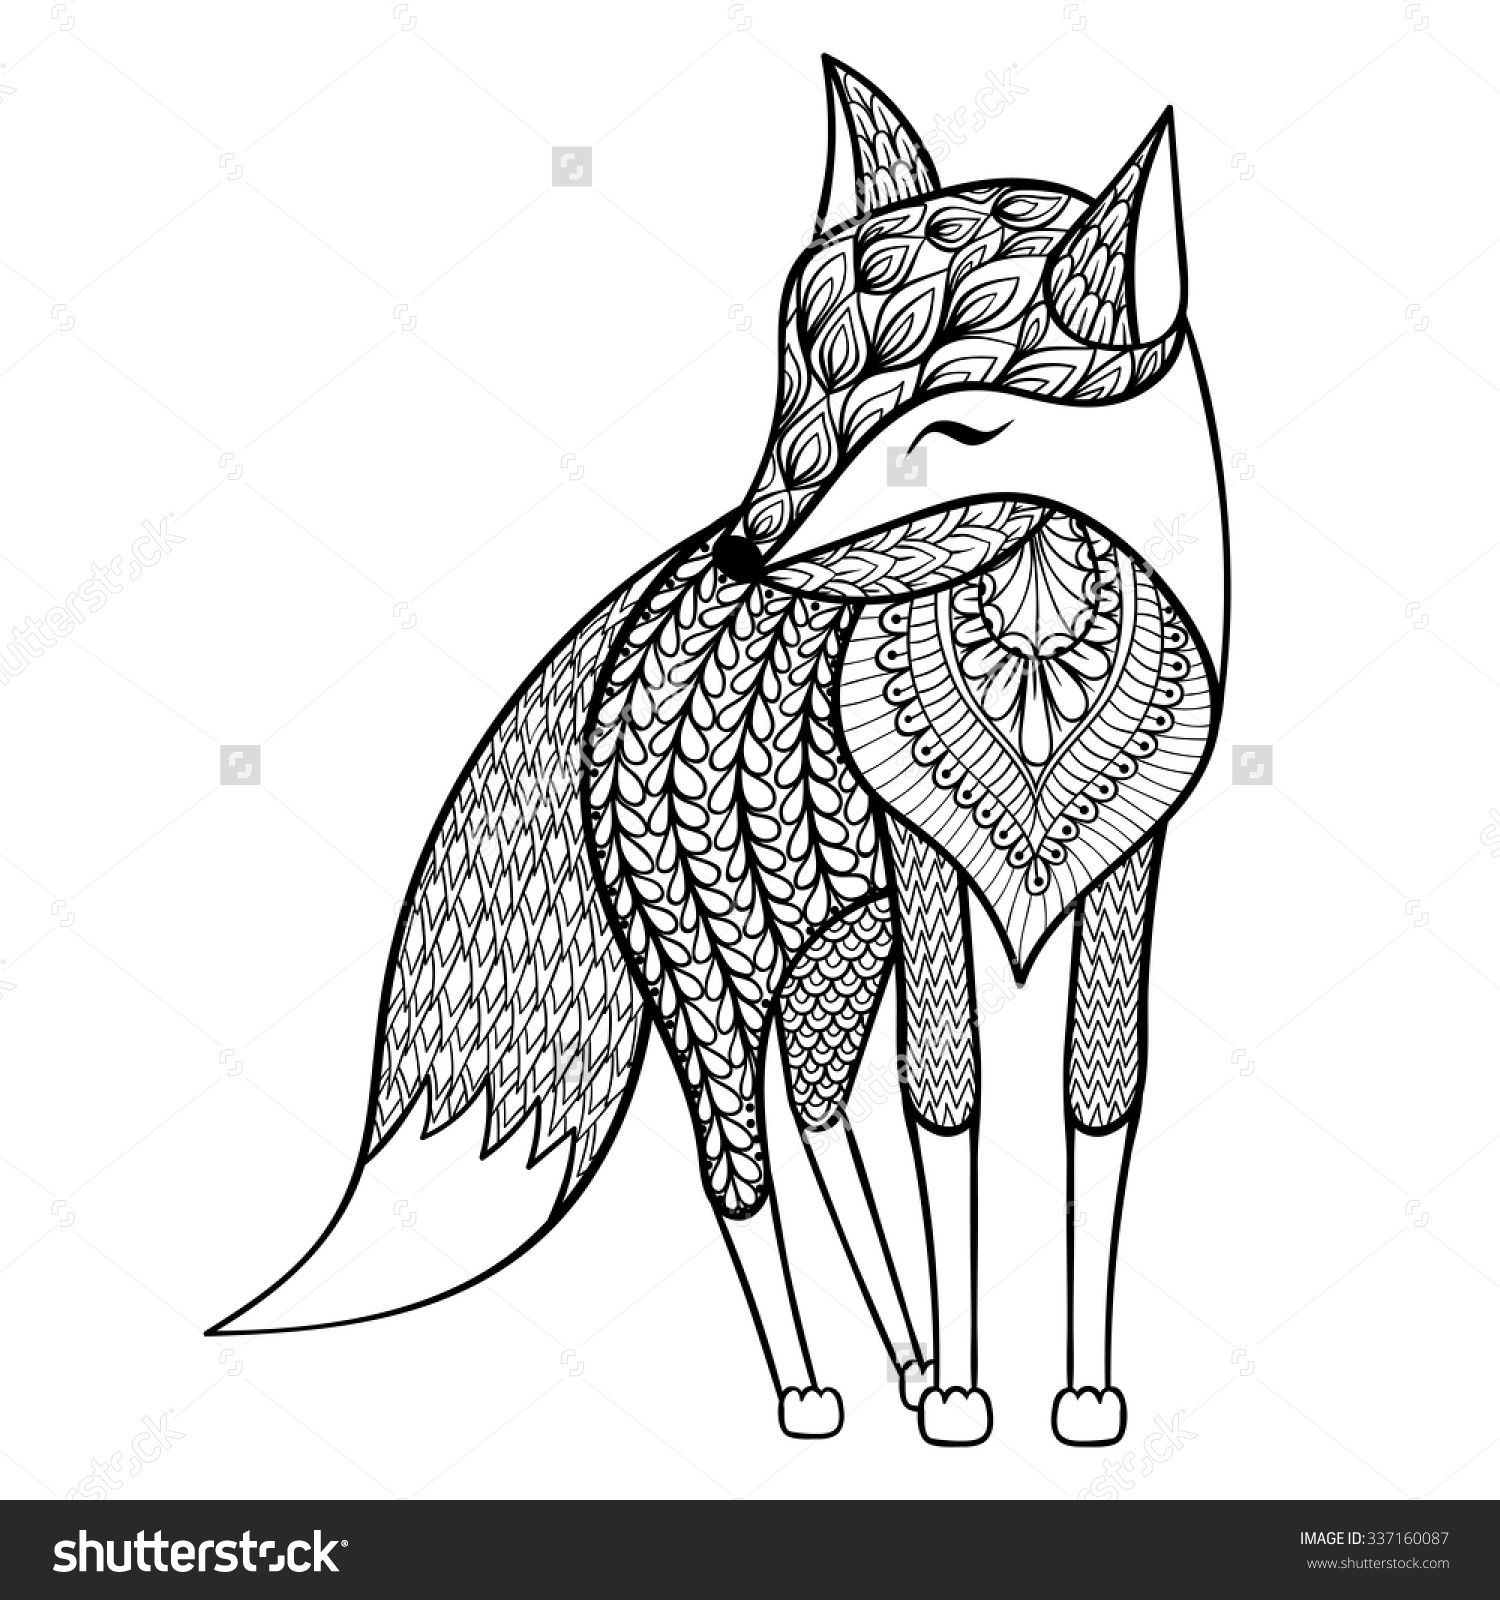 fox coloring pages for adults google search crafts pinterest foxes happy fox and tattoo